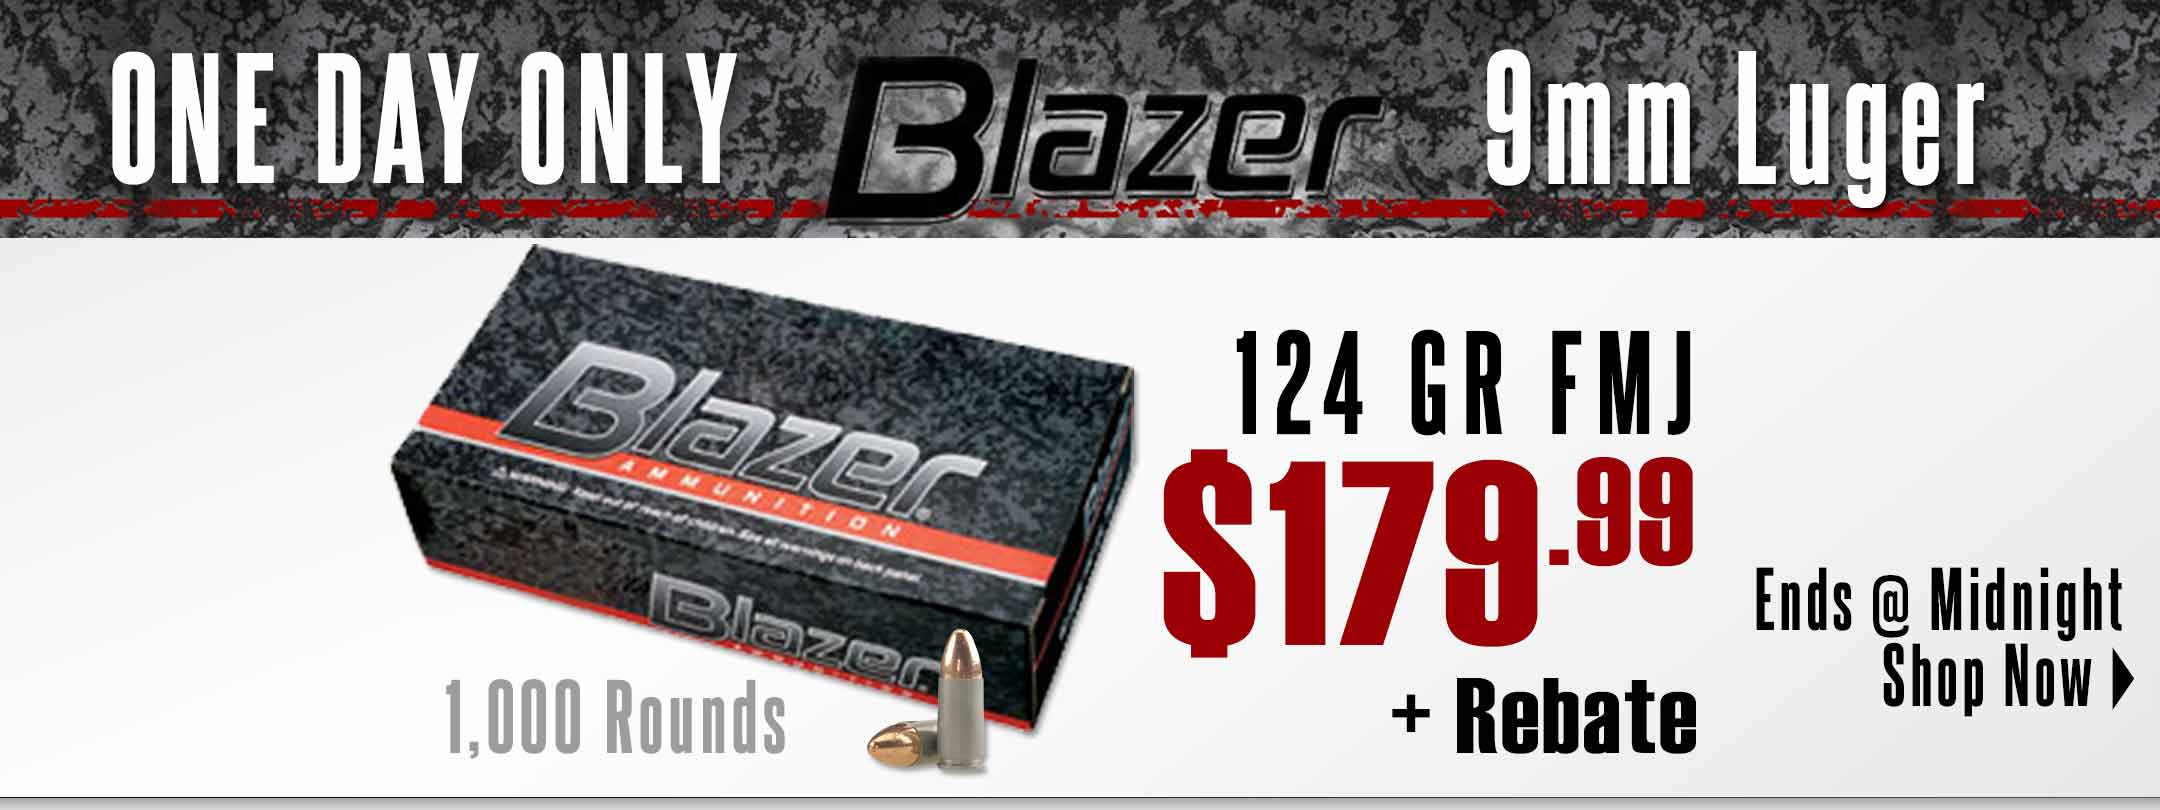 Save on Blazer 9mm!